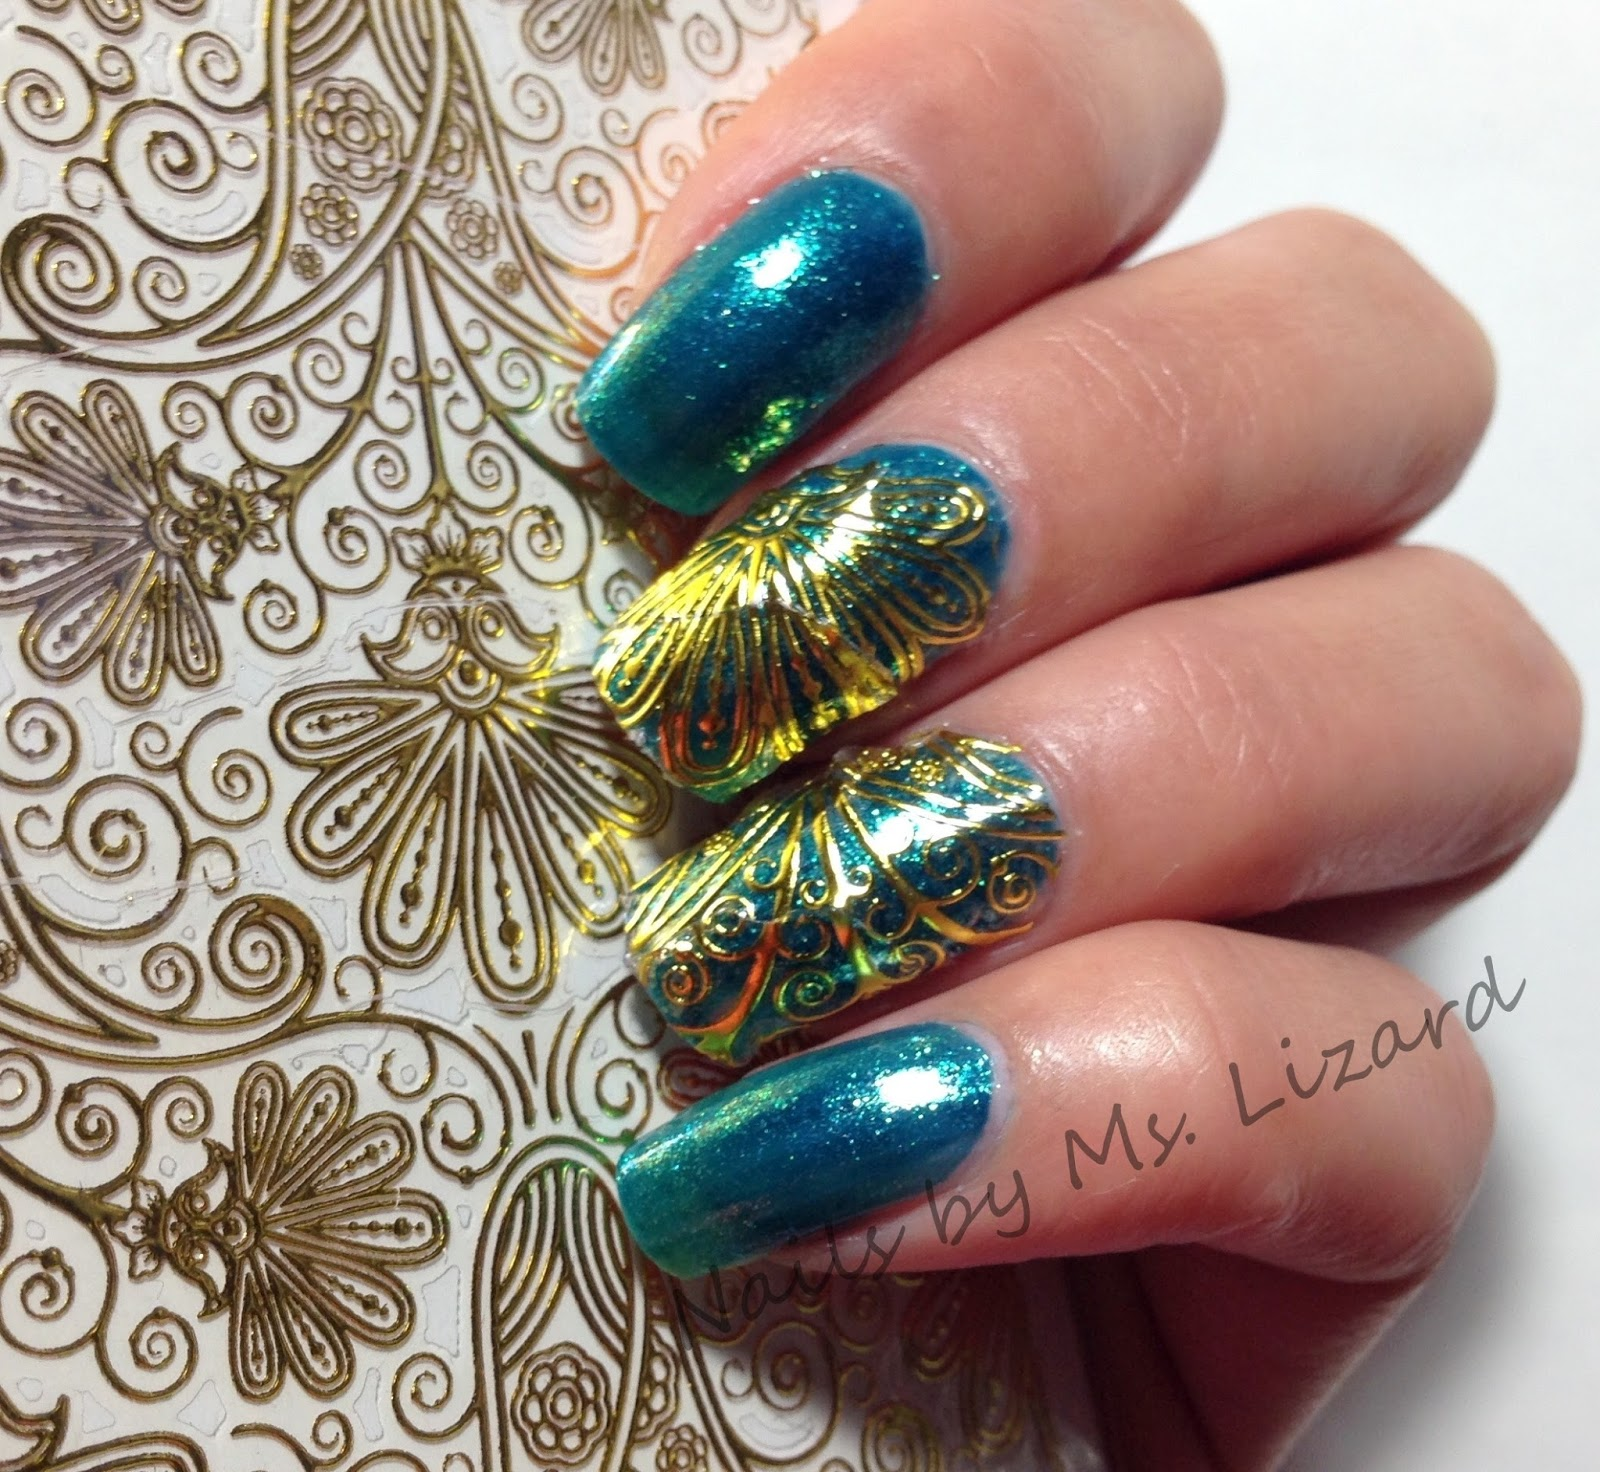 Nails by Ms. Lizard: Born Pretty Store:1 Sheet Embossed Flower 3D ...